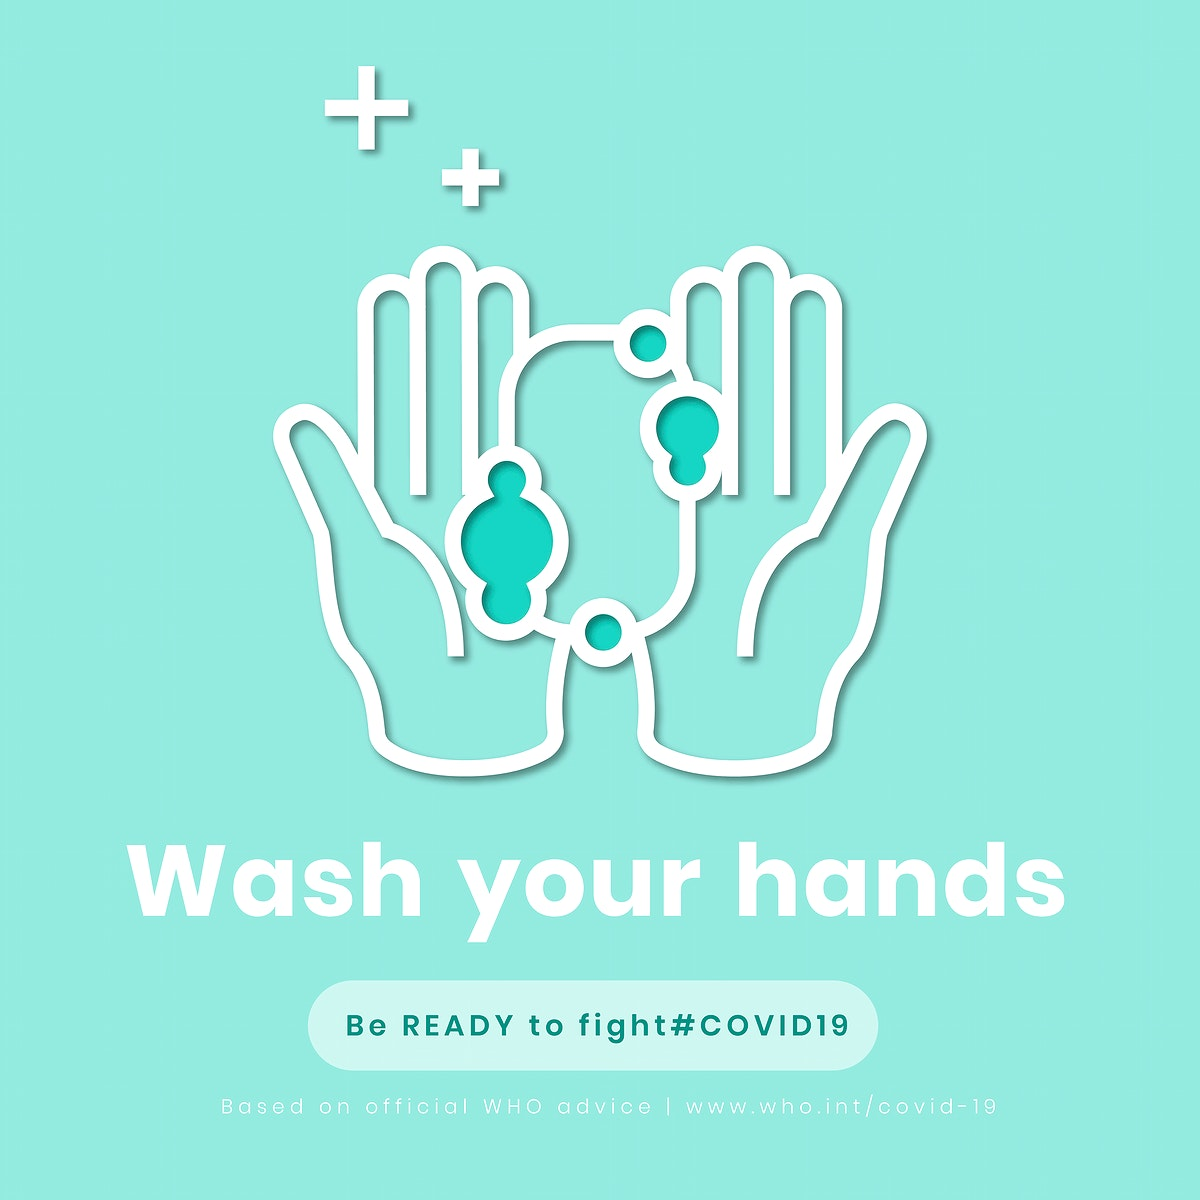 Wash your hands, be ready to fight covid-19 template vector